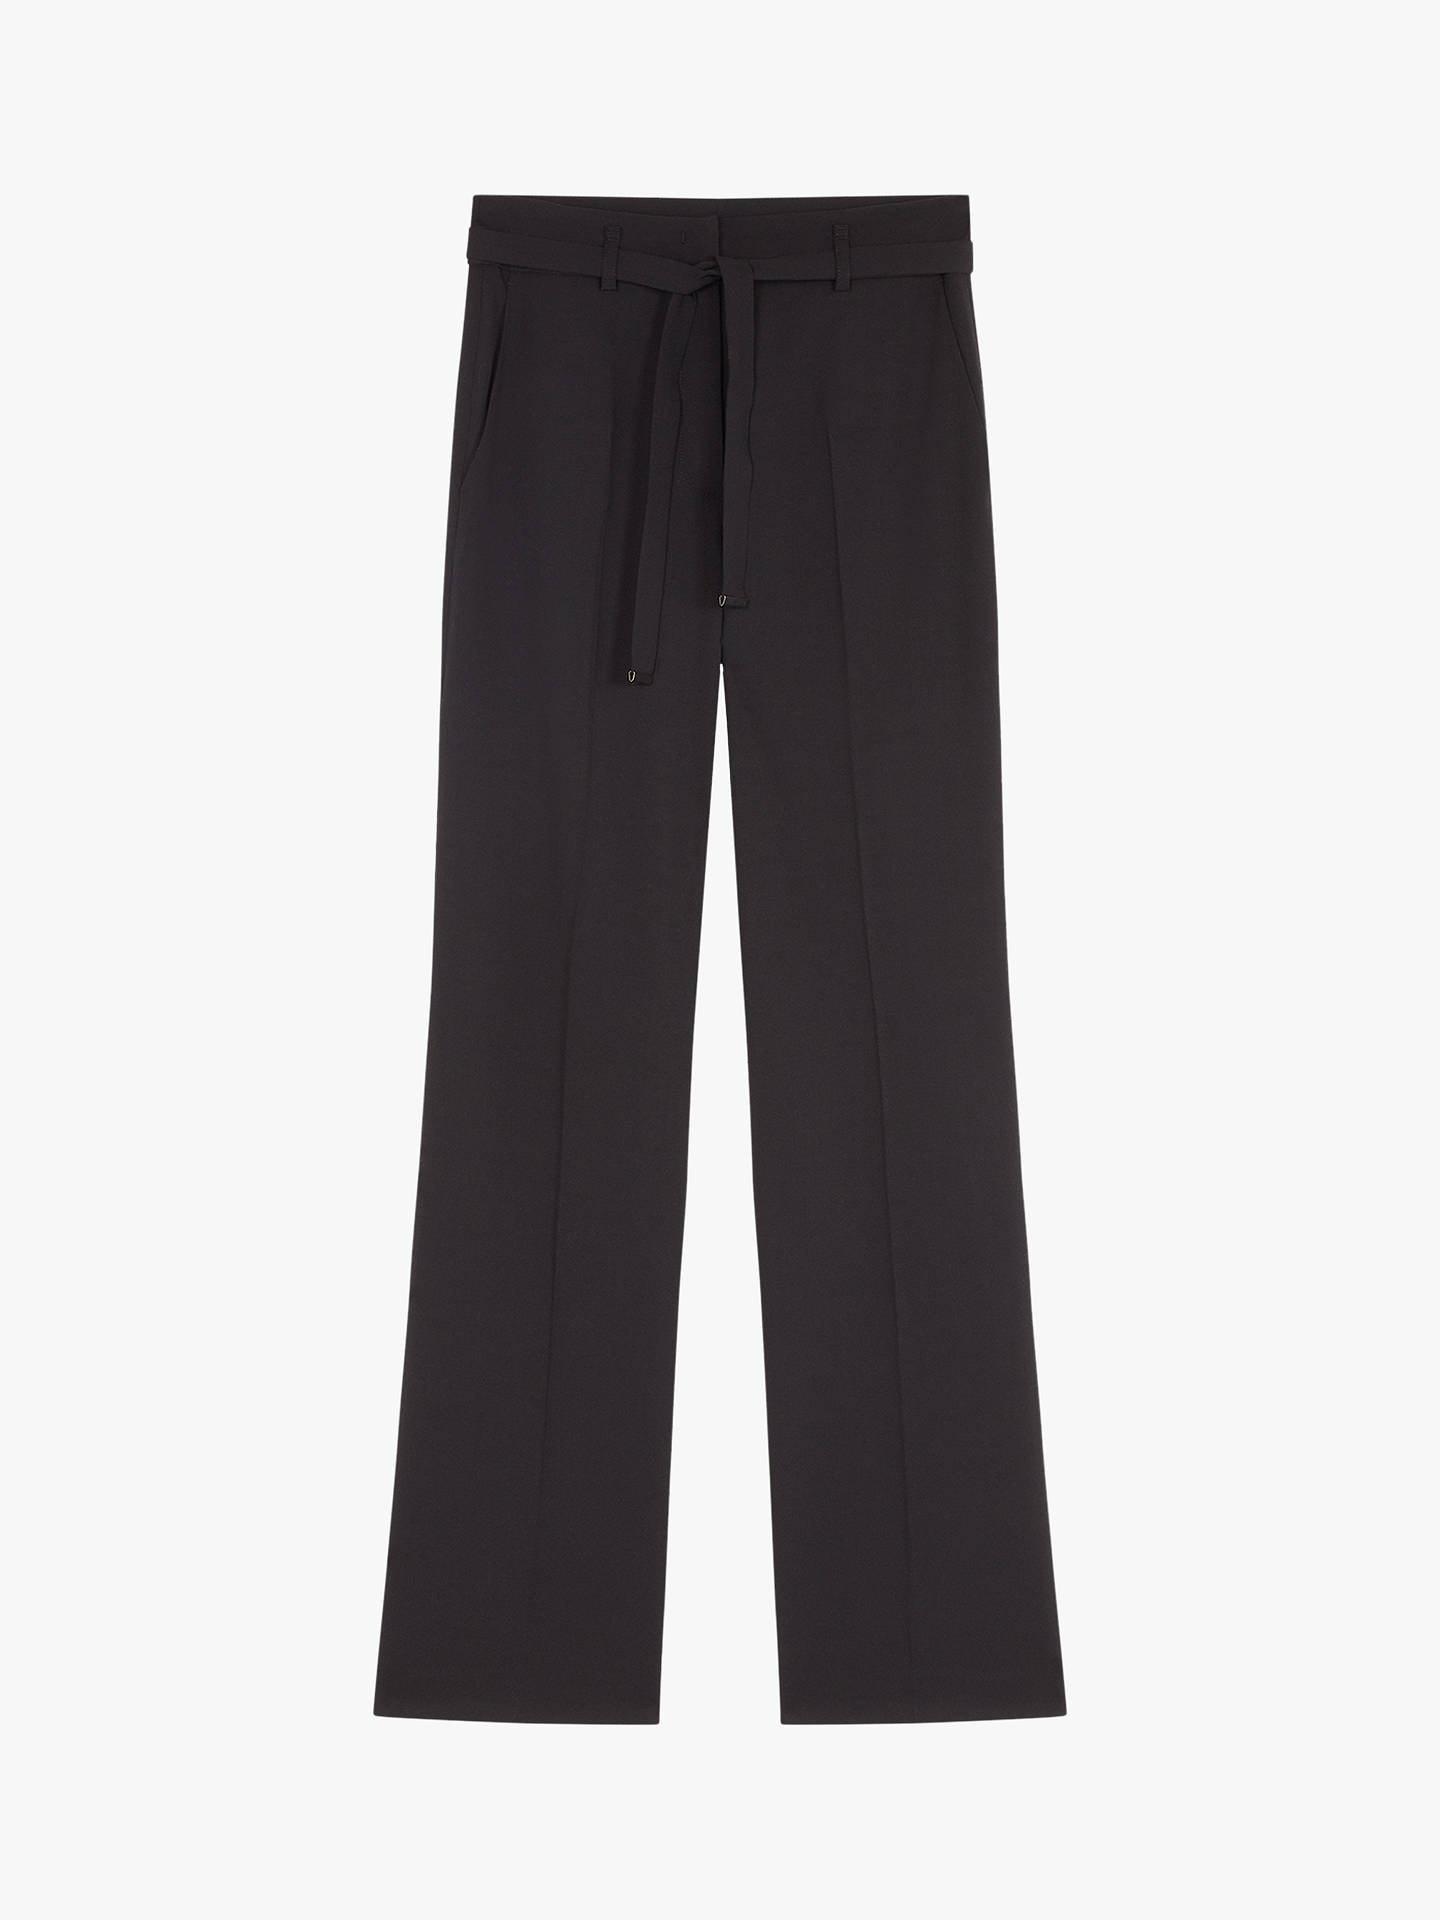 BuyGerard Darel Georgia Wool Blend Flared Trousers, Black, 10 Online at johnlewis.com